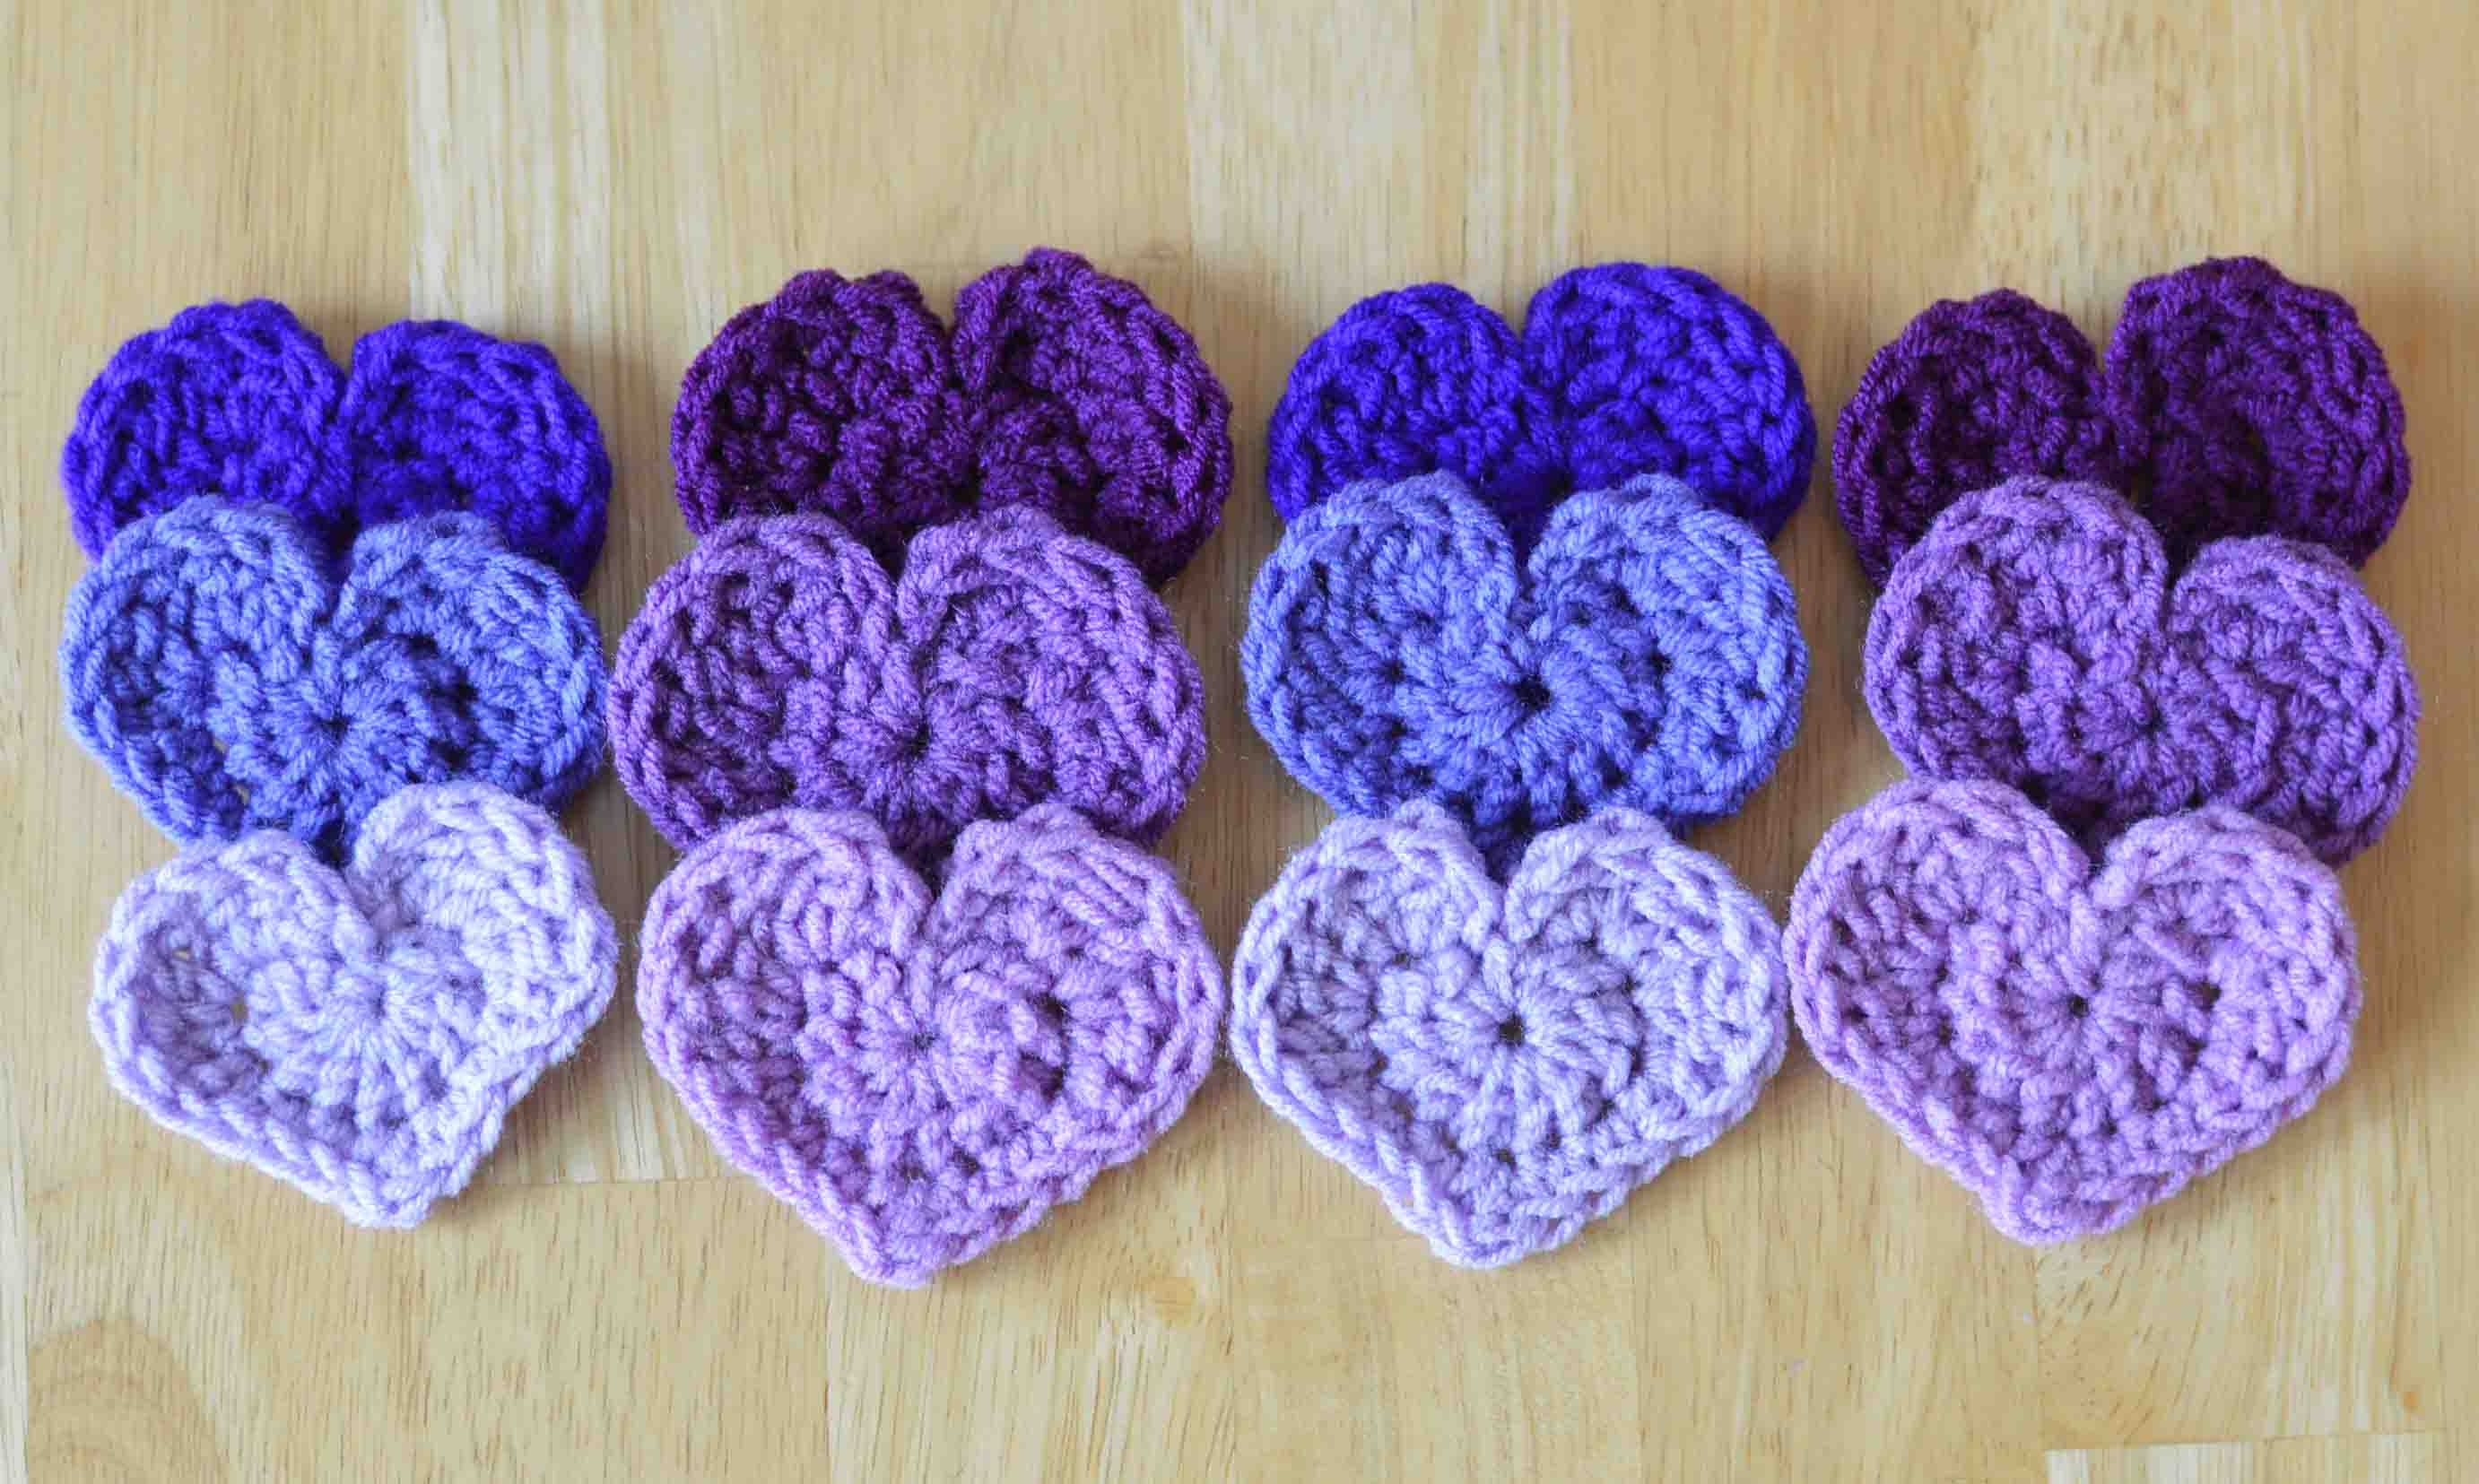 Red Heart Yarn Free Crochet Patterns Easy Crochet Patterns LZK ...